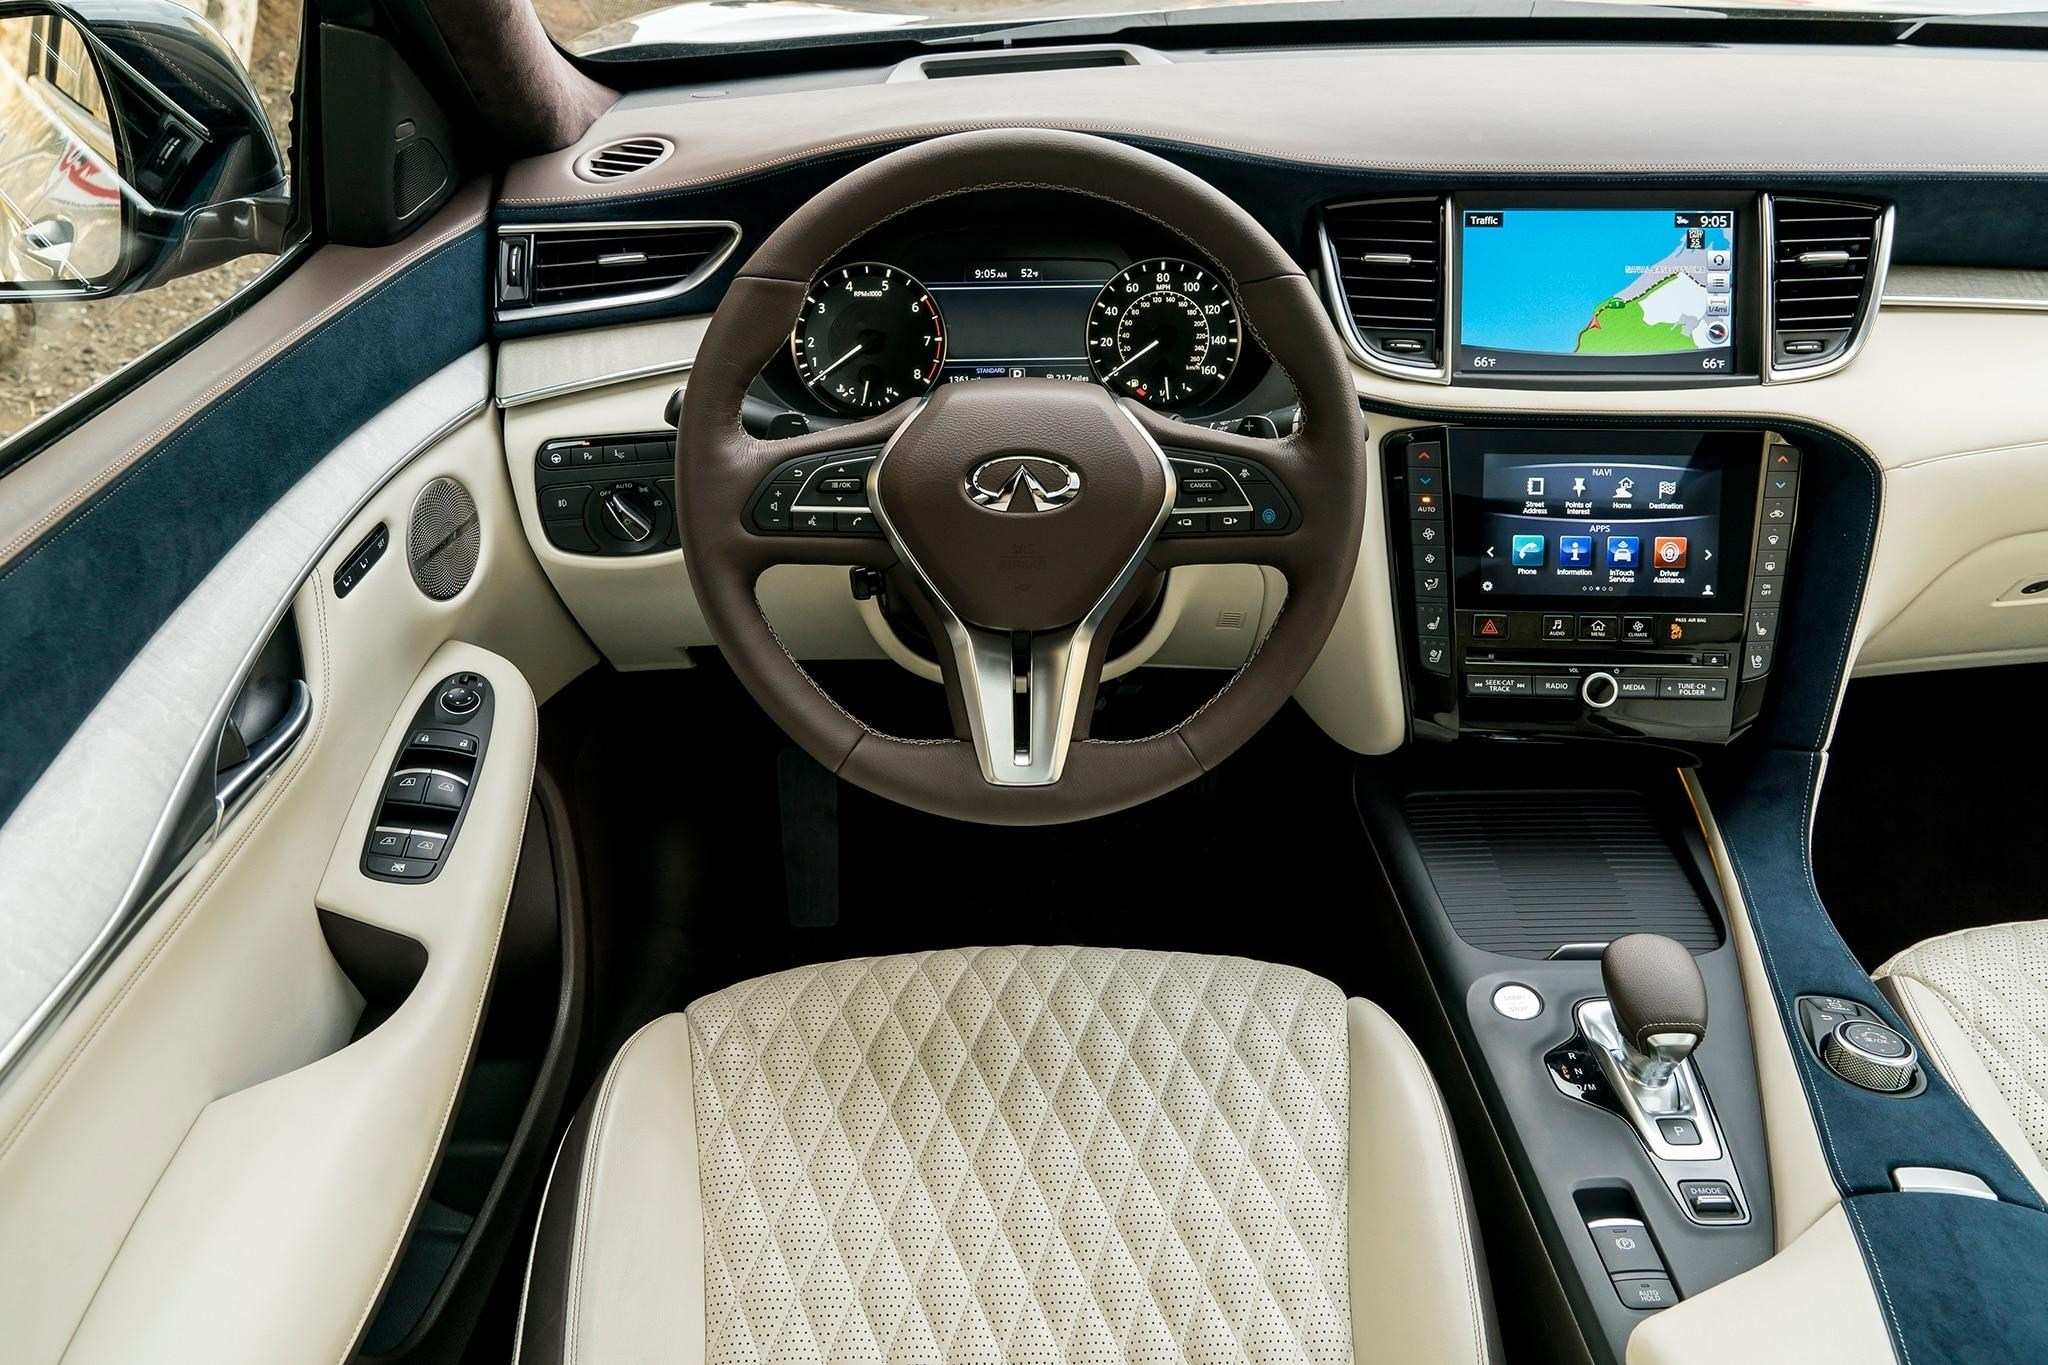 22 New Infiniti Qx50 2019 Images Overview And Price Performance by Infiniti Qx50 2019 Images Overview And Price